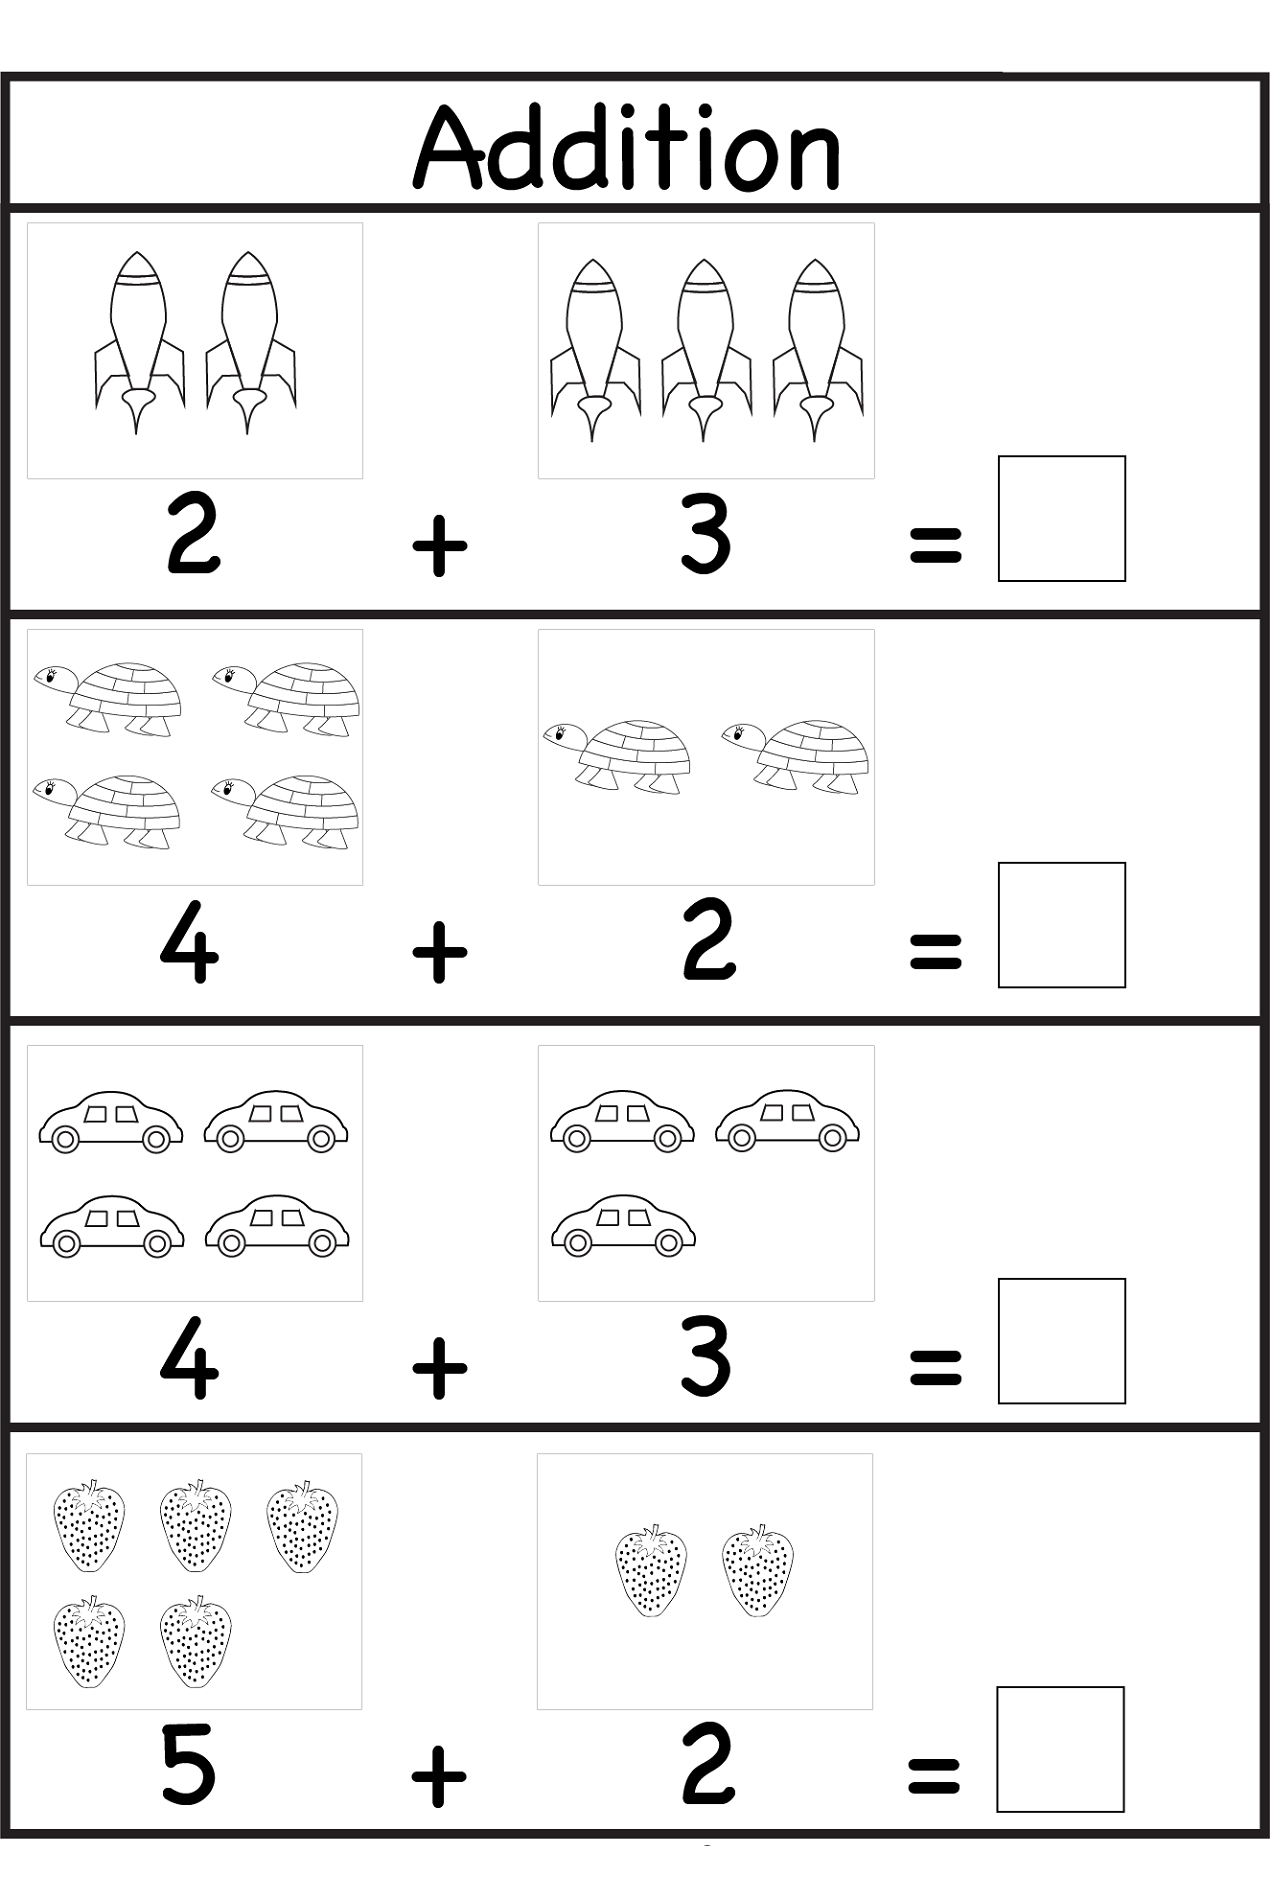 Math Worksheet For 9 Year Olds